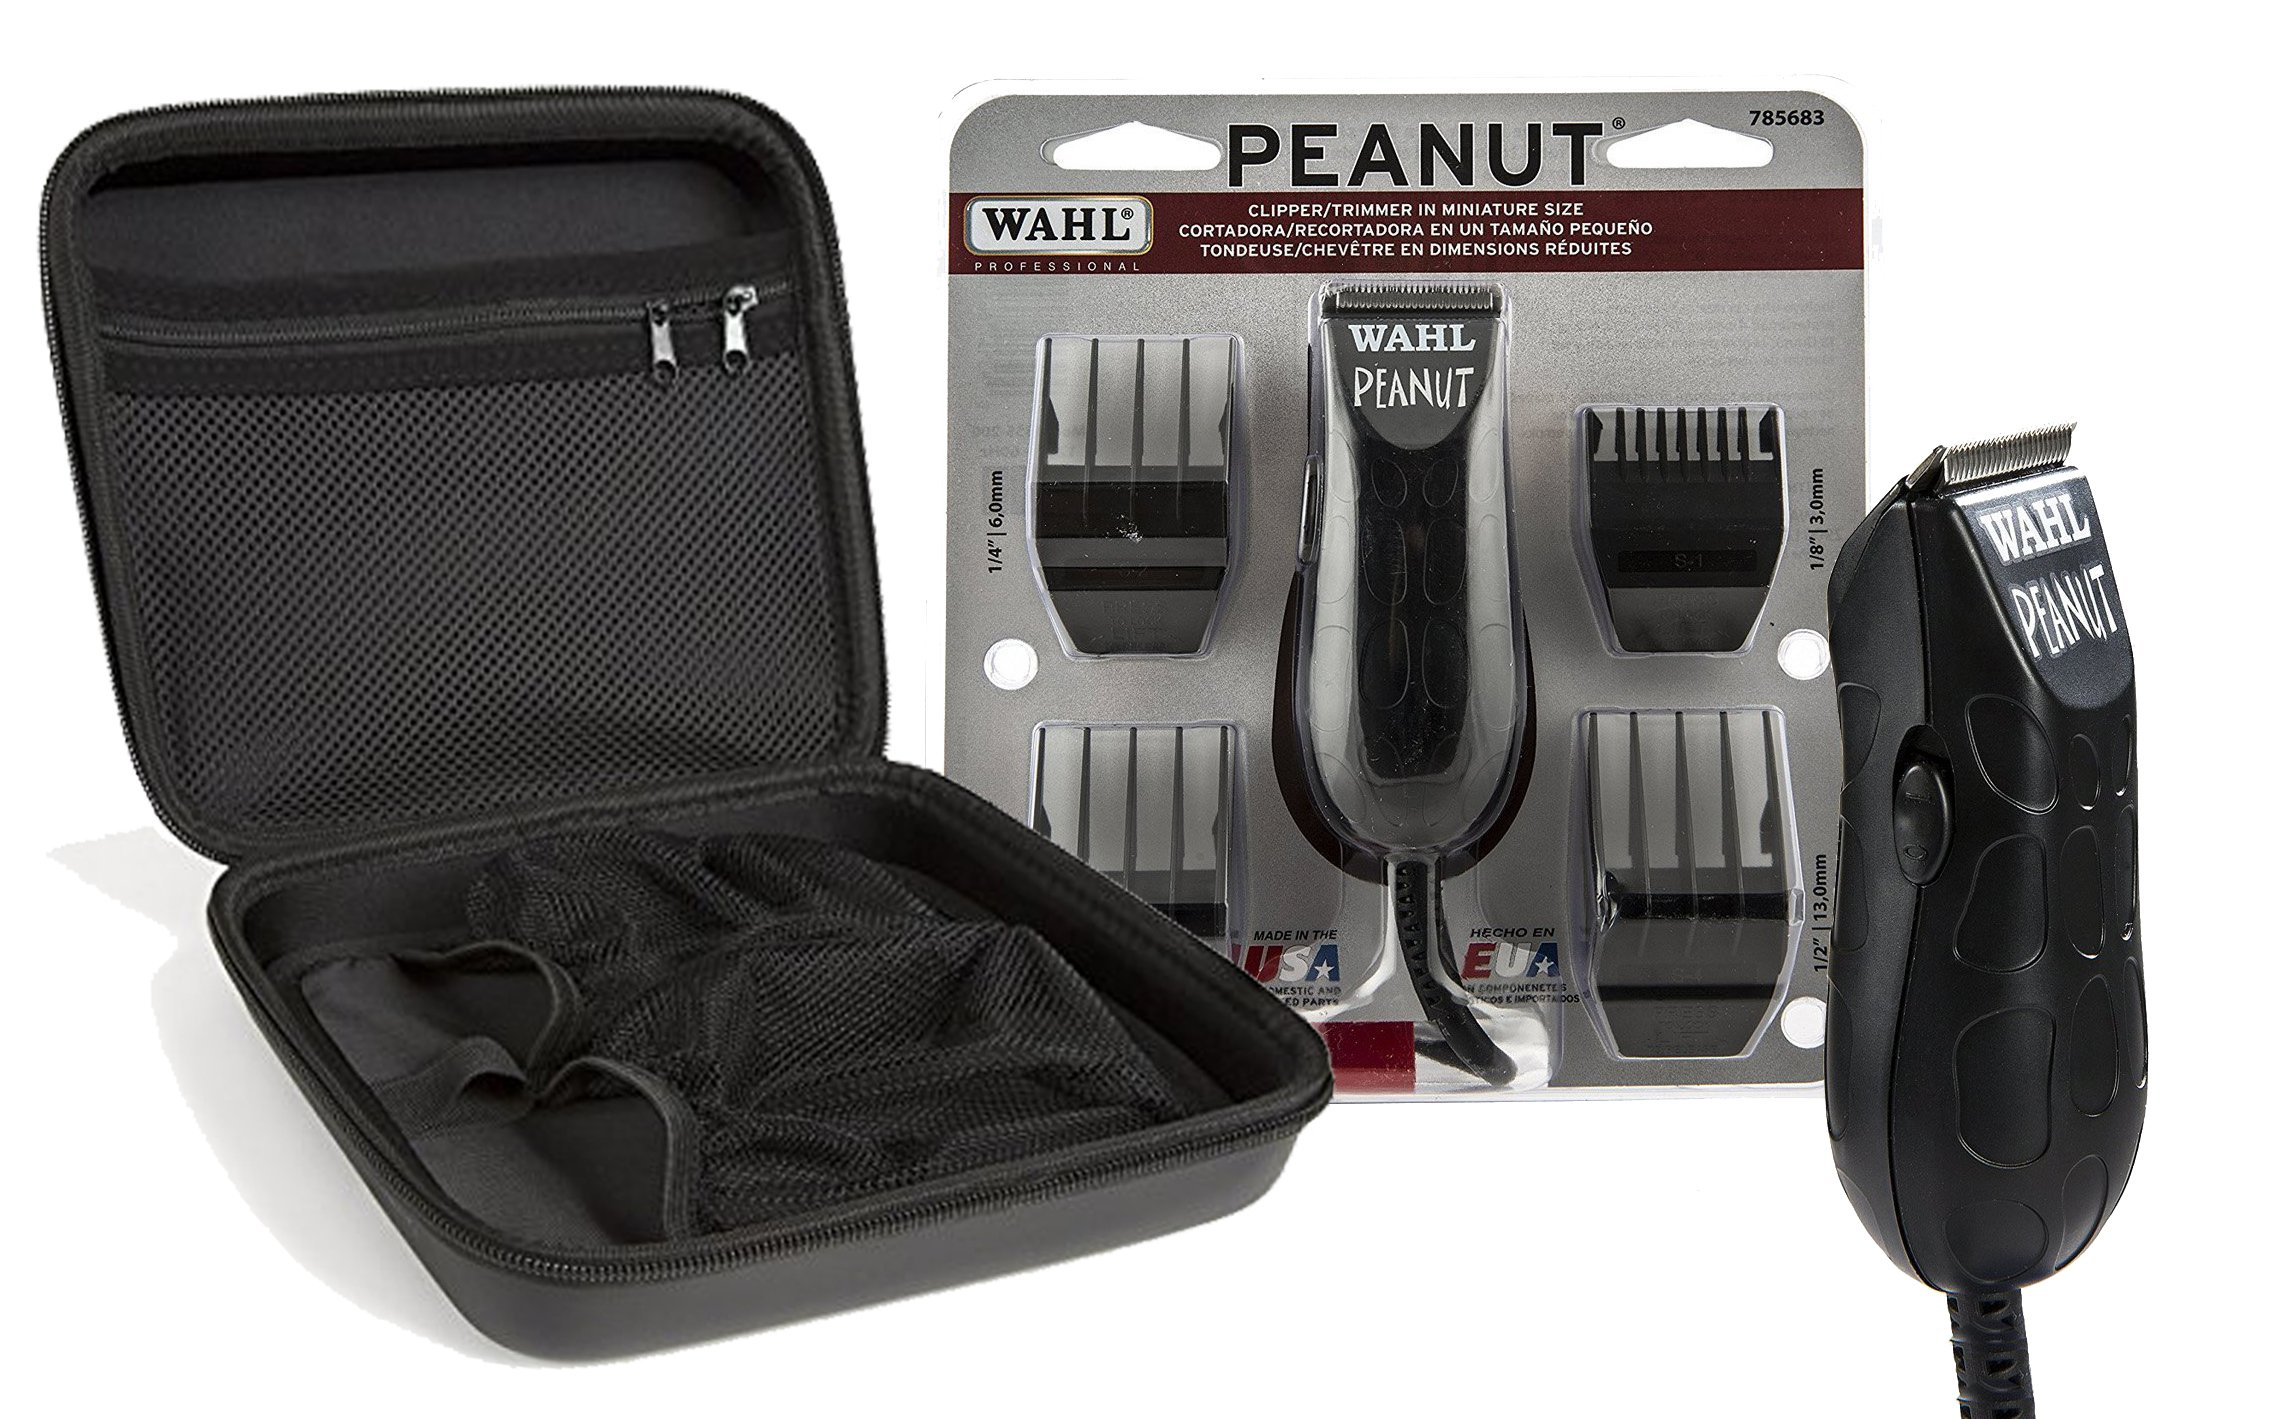 Wahl Professional Peanut Clipper/Trimmer #8655-200, Black with Travel Storage Case #90730 – Great for Barbers and Stylists by Wahl Professional (Image #1)